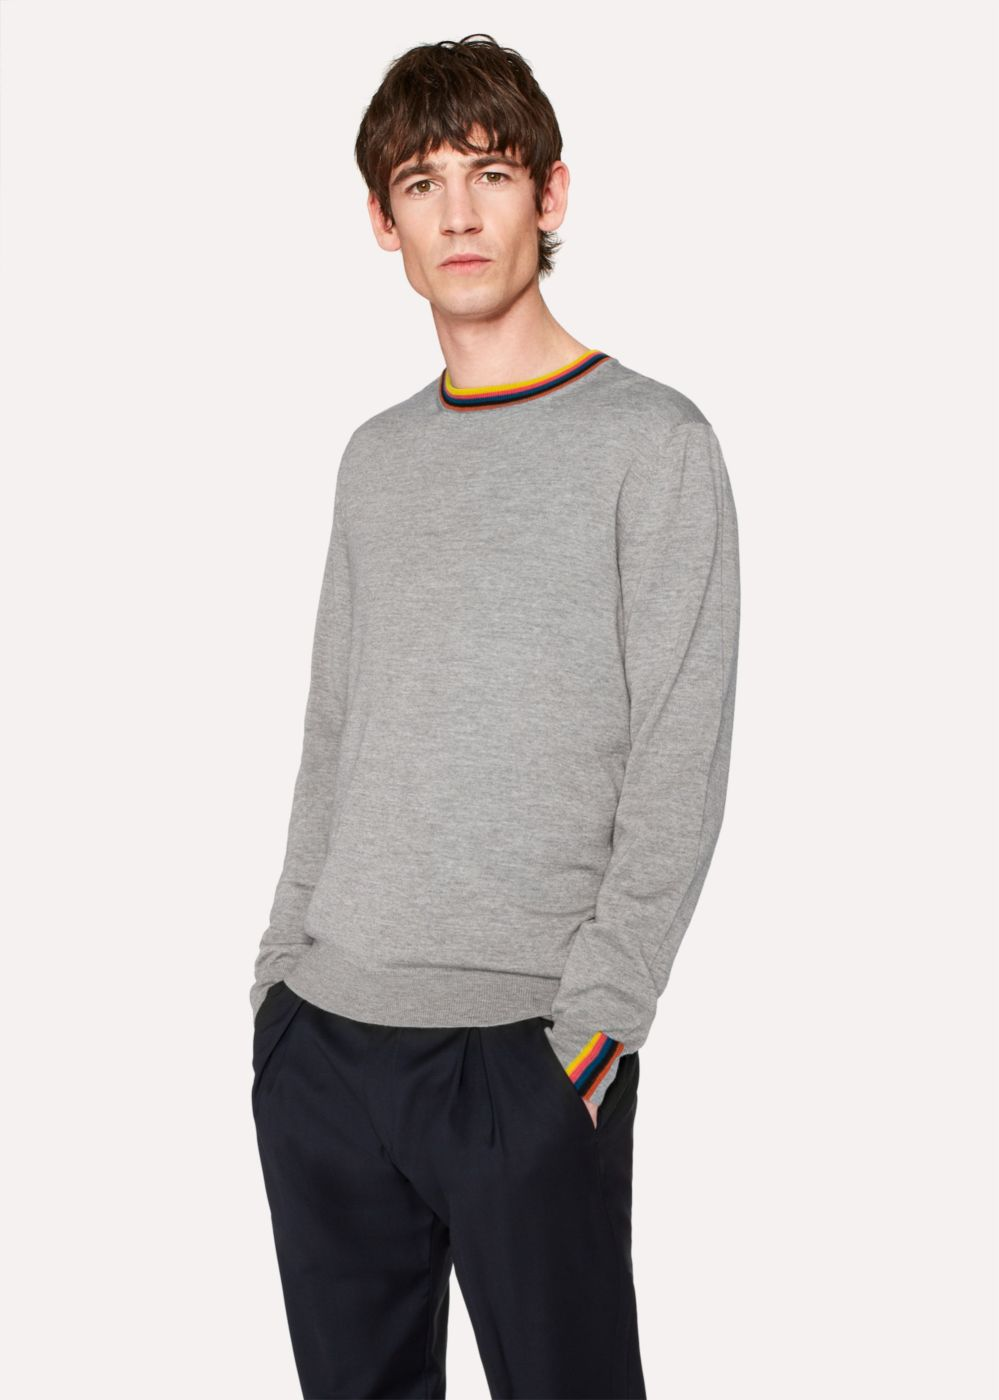 Paul Smith Men's Grey Marl Merino-Wool Sweater With 'Artist Stripe' Collar And Cuffs